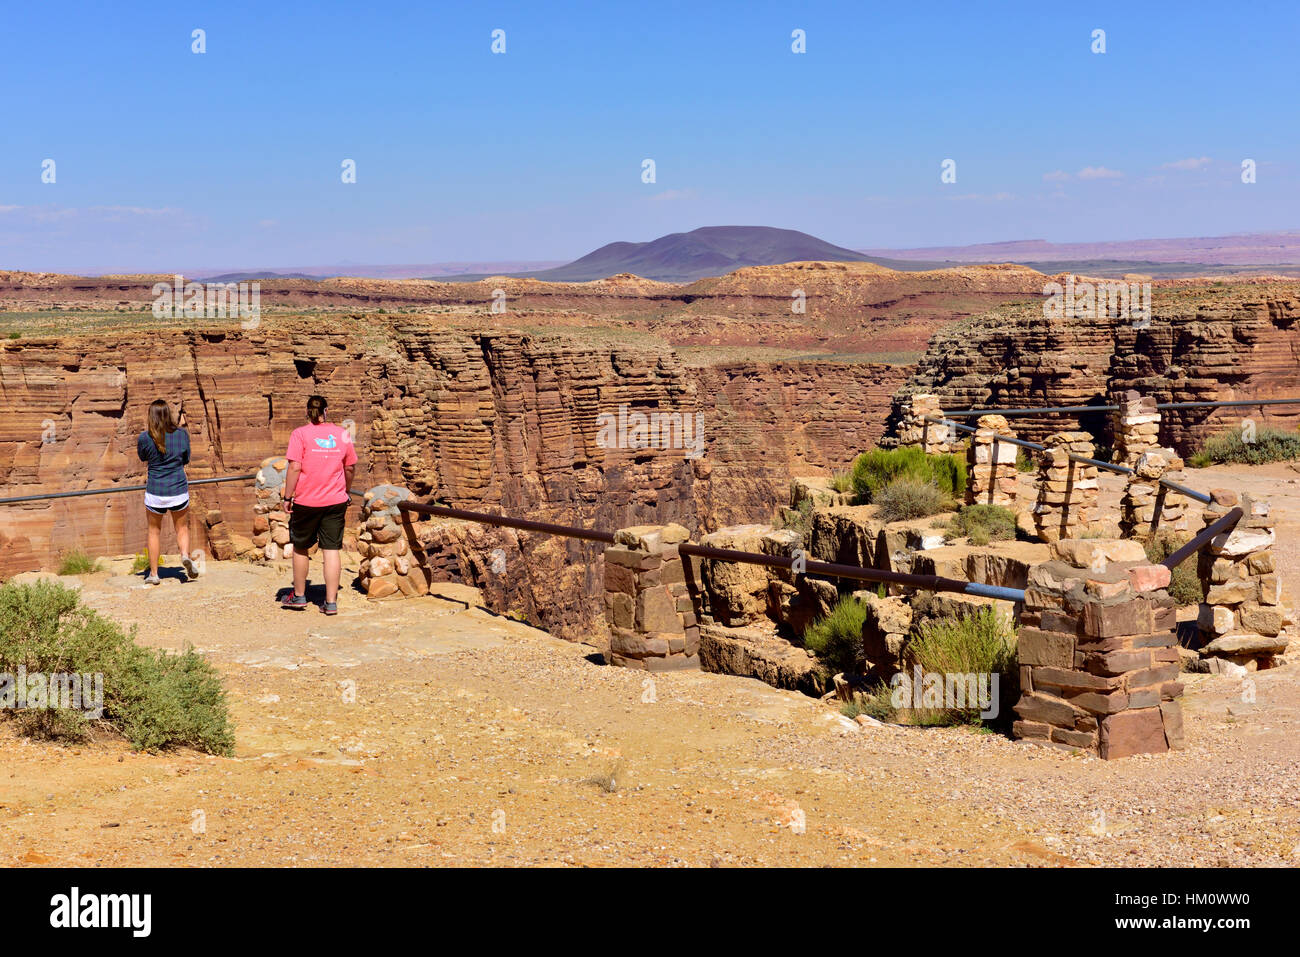 Navajo Tribal location, Little Colorado River Viewpoint at early end of Grand Canyon, Arizona - Stock Image